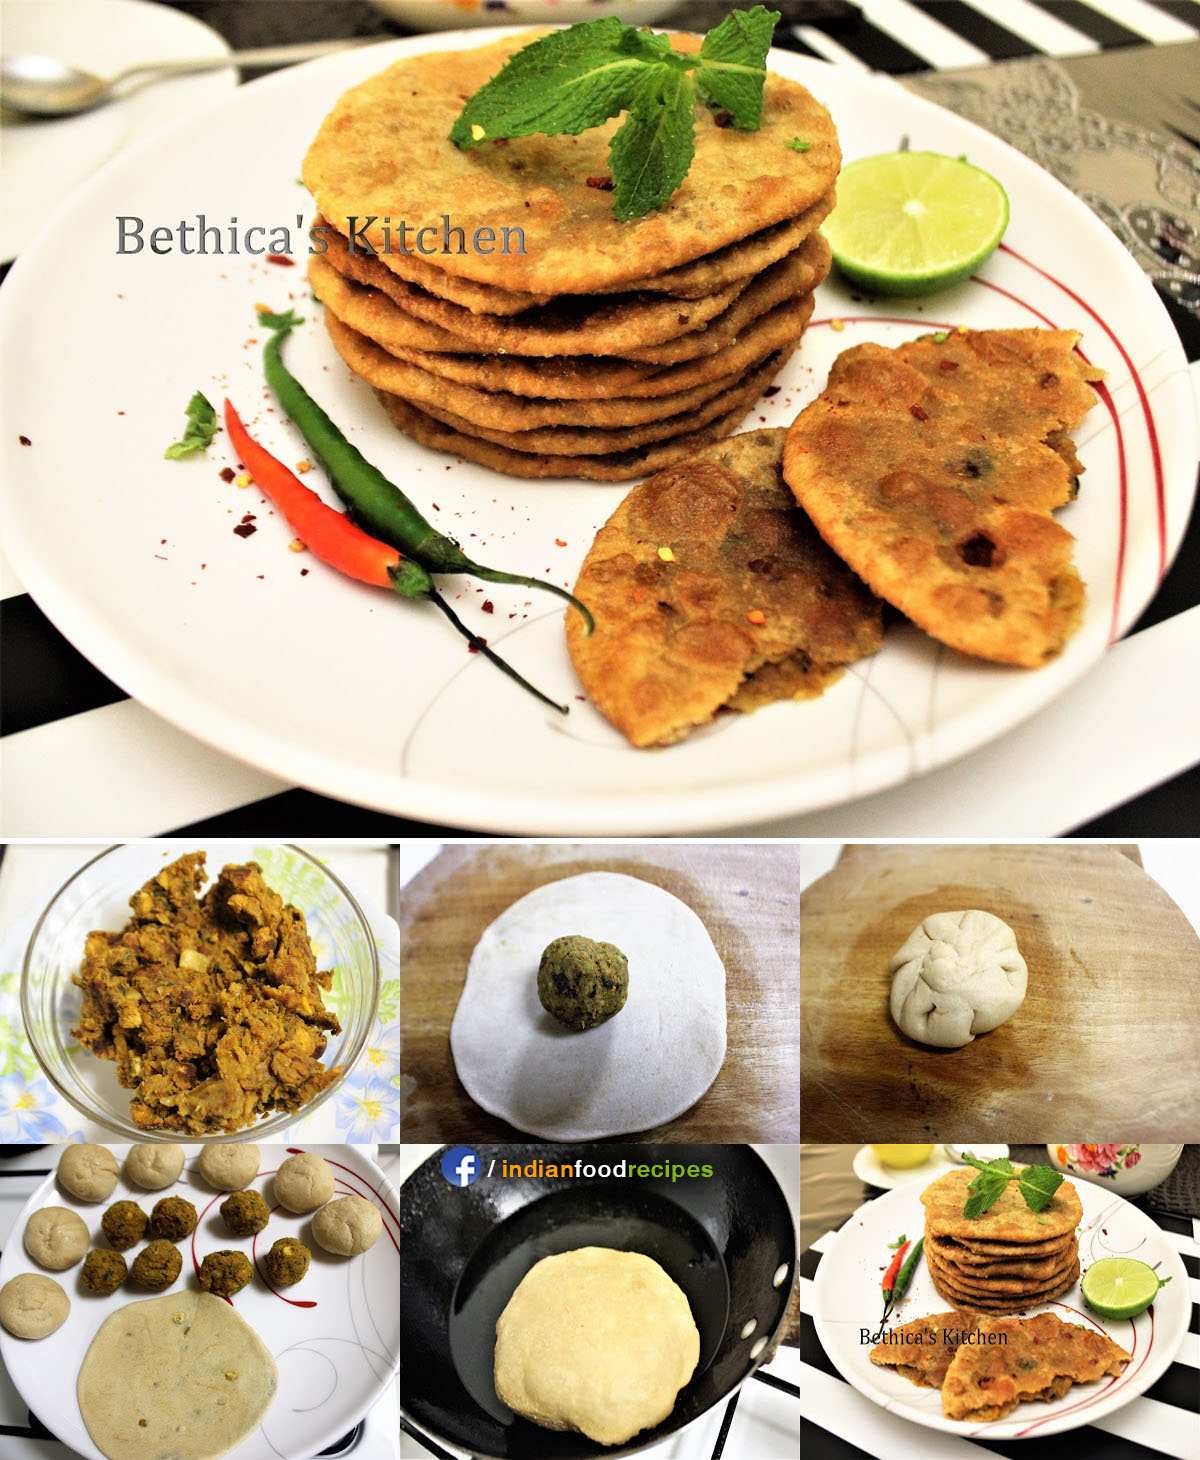 Mixed Dal Kachori (Stuffed Mixed Lentil Indian Bread) recipe step by step